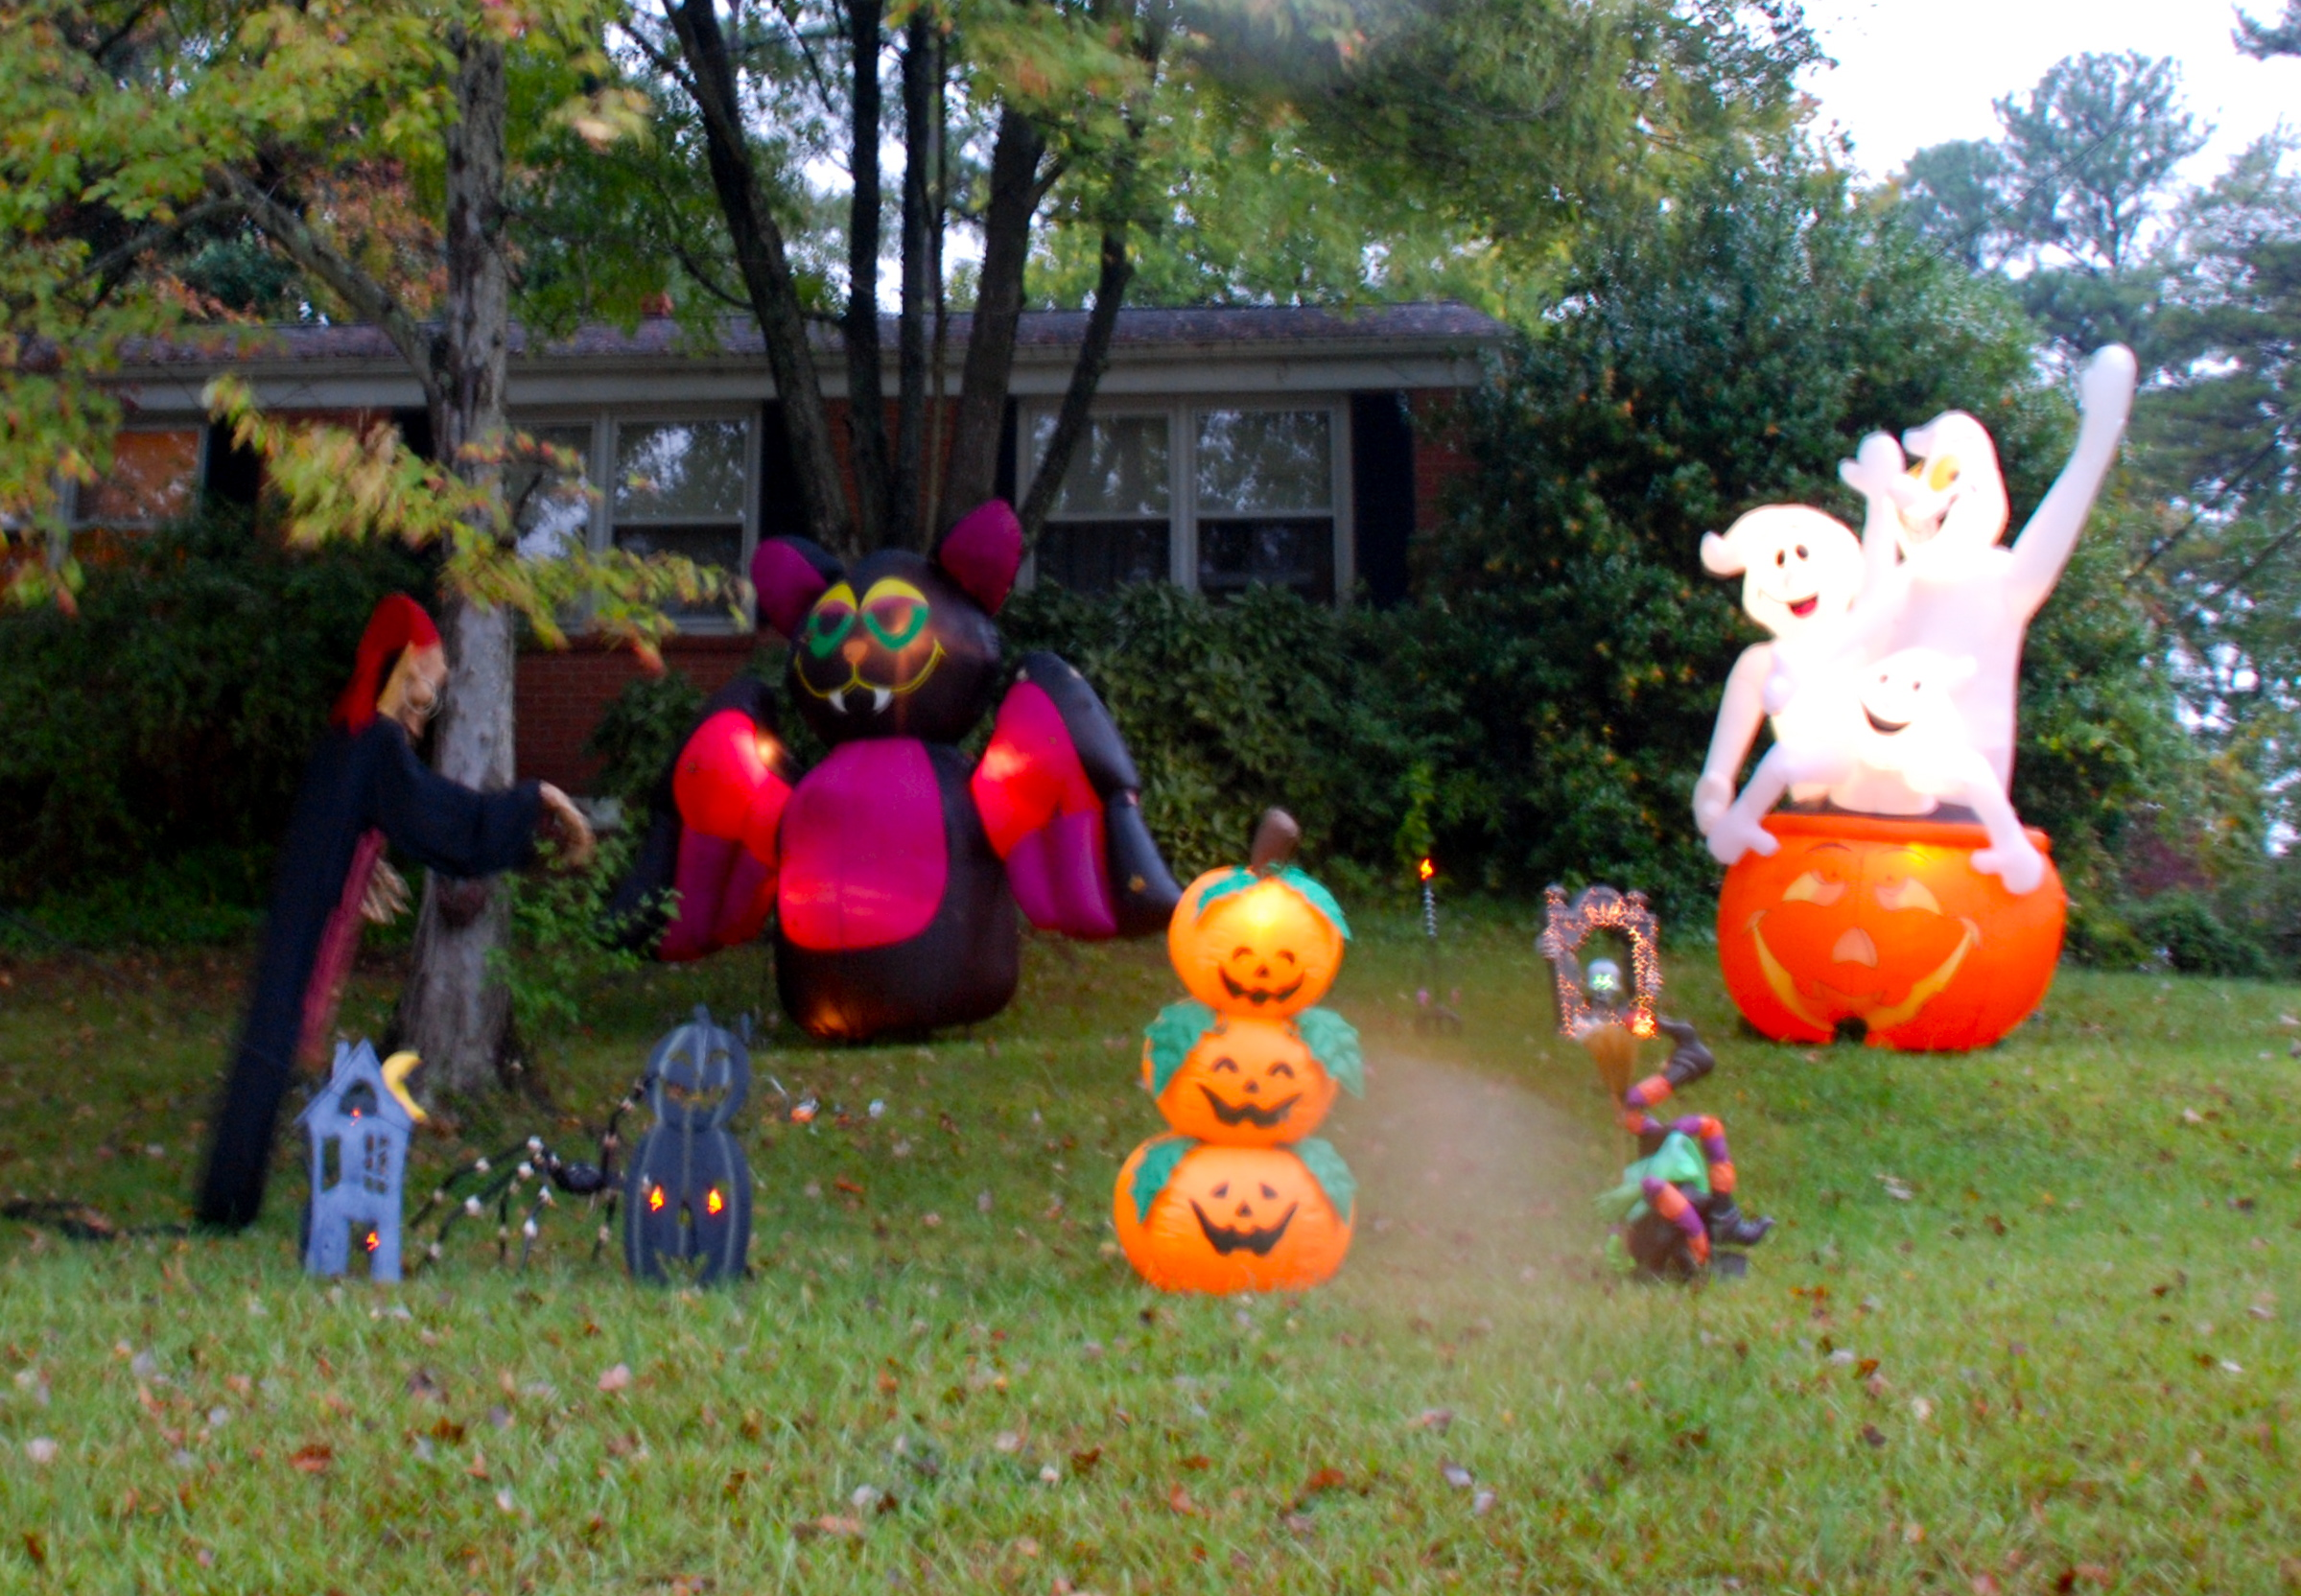 halloween inflatables - Halloween Inflatable Yard Decorations